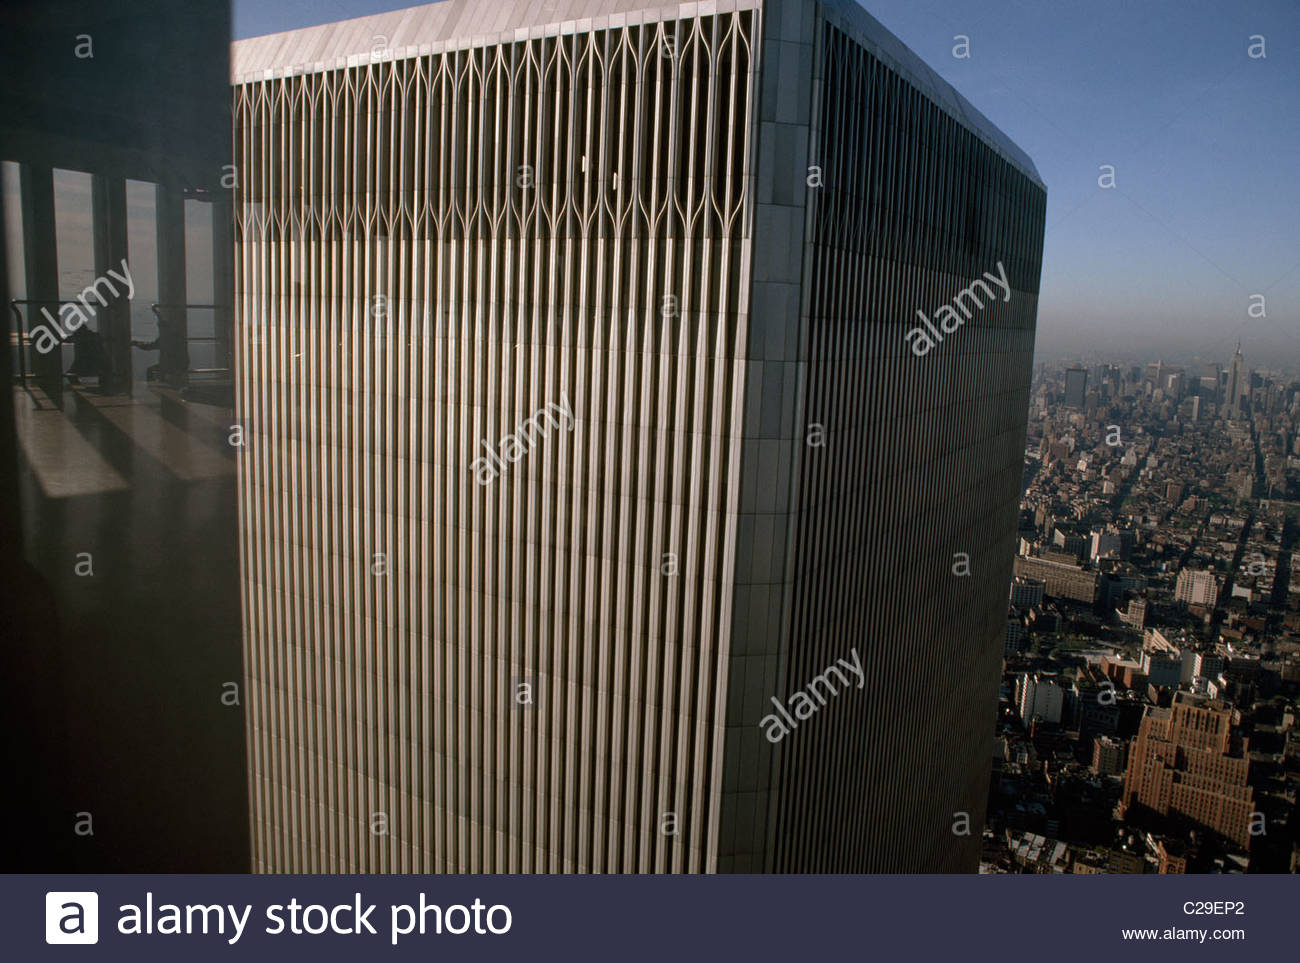 The top of one of the World Trade Center towers. - Stock Image